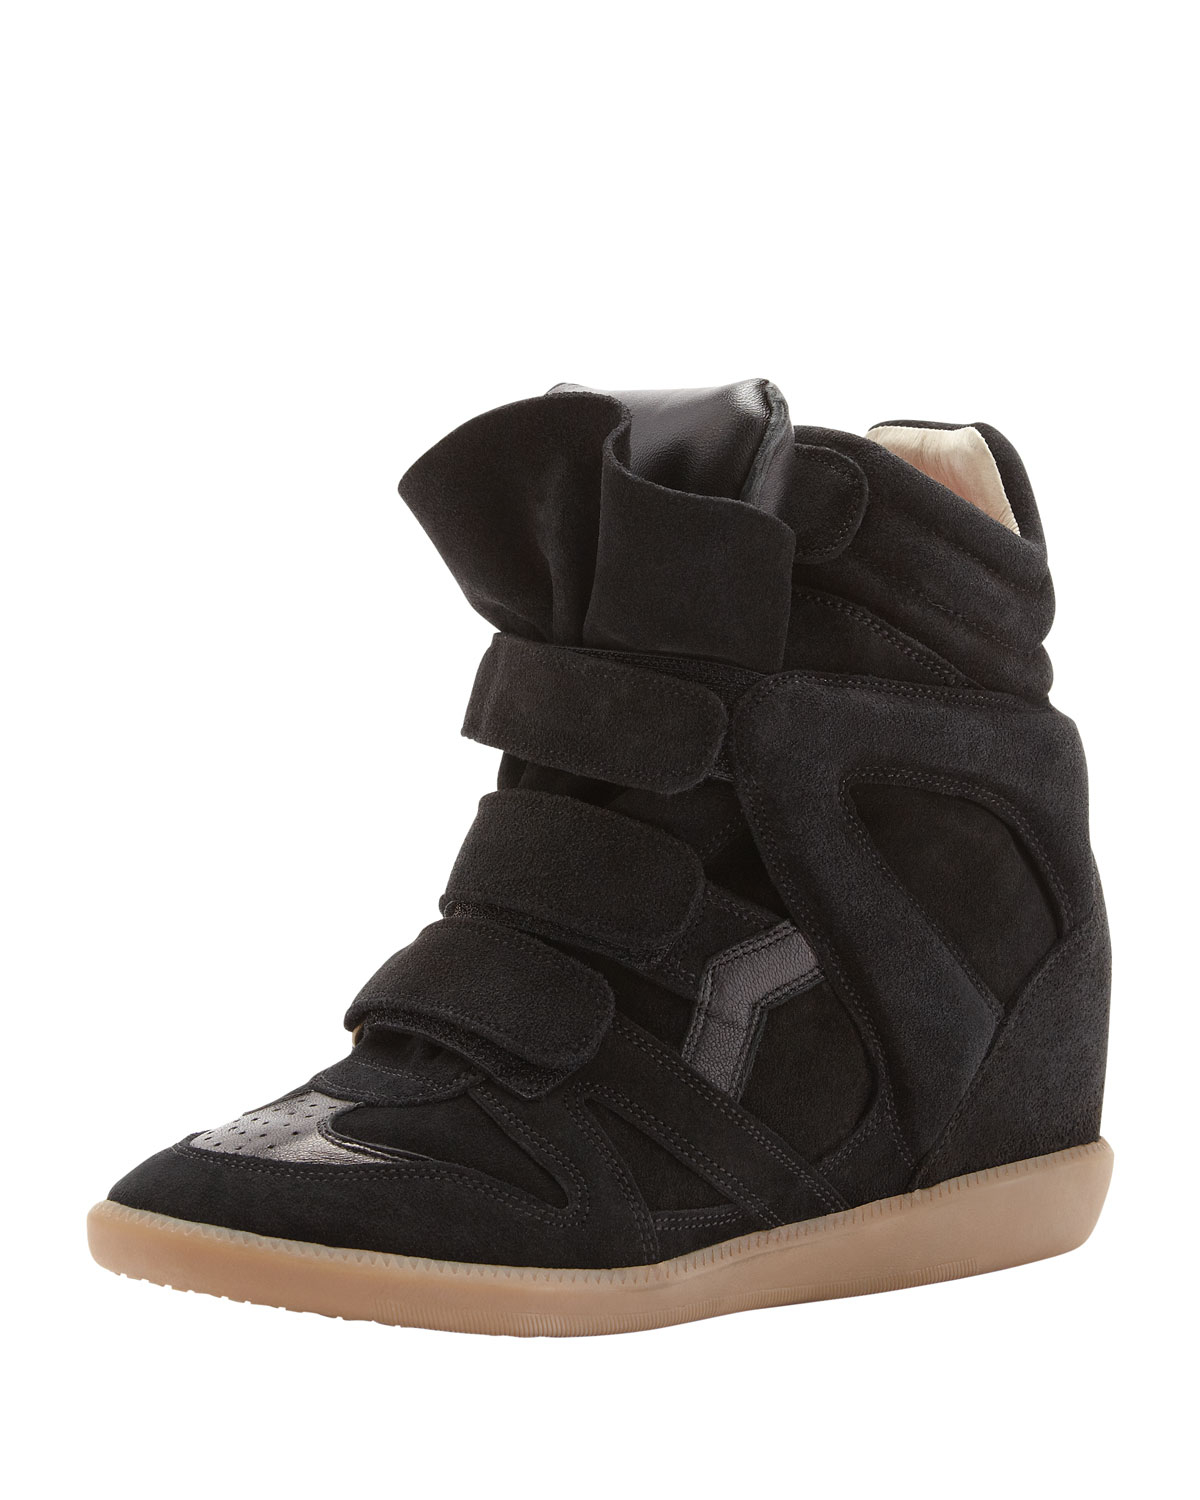 lyst isabel marant bekett sneaker in black. Black Bedroom Furniture Sets. Home Design Ideas